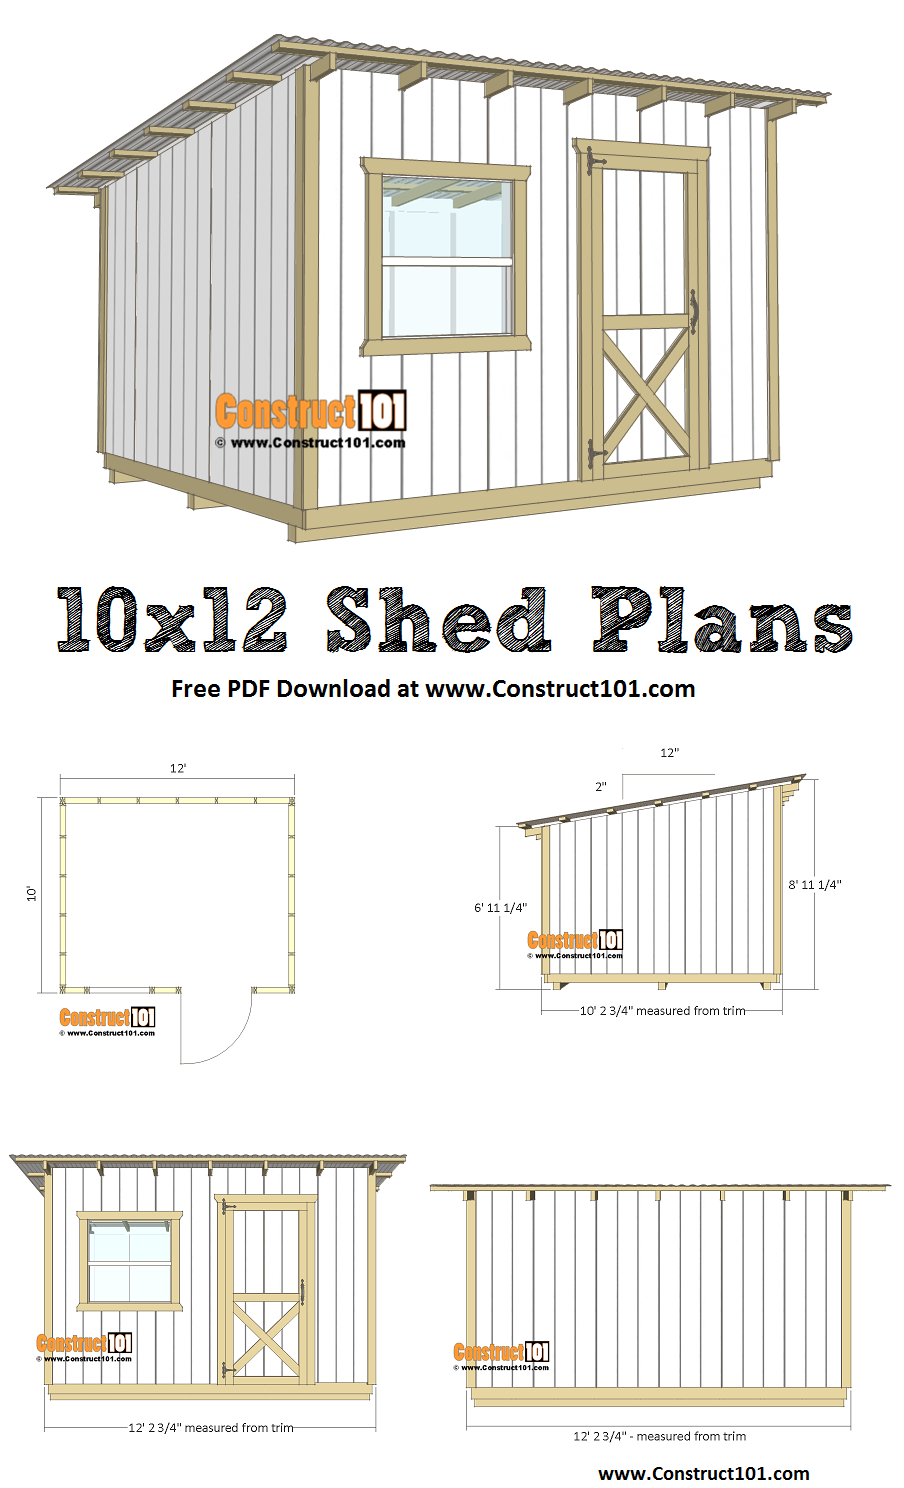 10x12 Lean To Shed Plans Pdf Download Construct101 Lean To Shed Diy Storage Shed Diy Storage Shed Plans